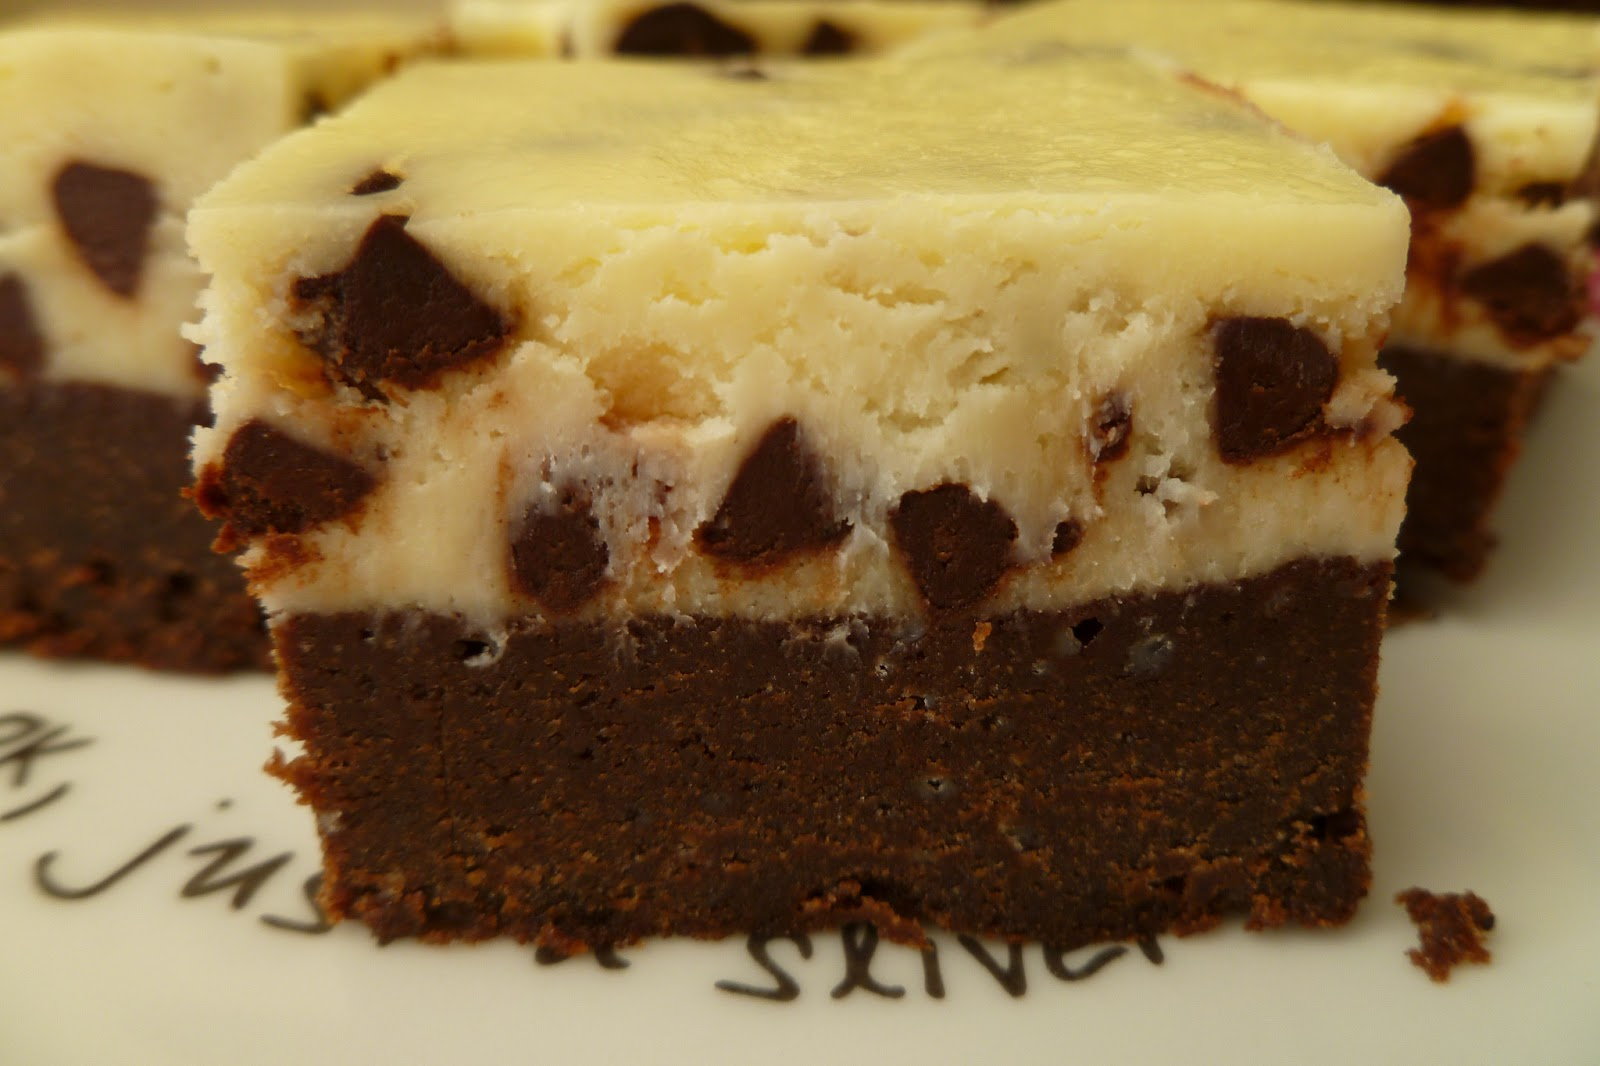 The Pastry Chef's Baking: New York Cheesecake Brownies